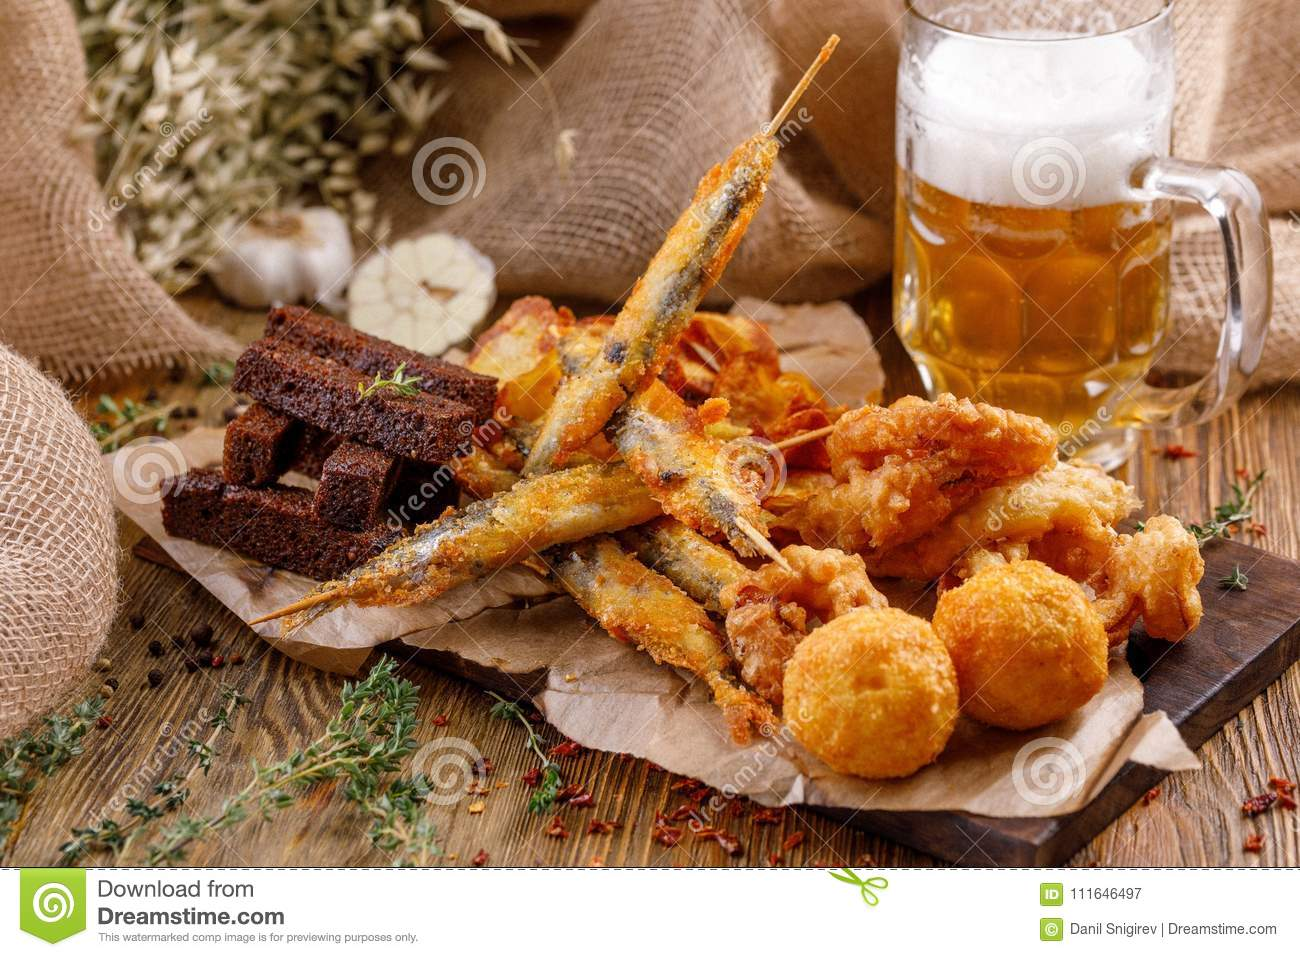 Snacks to a beer plate. Still-life on a wooden background.